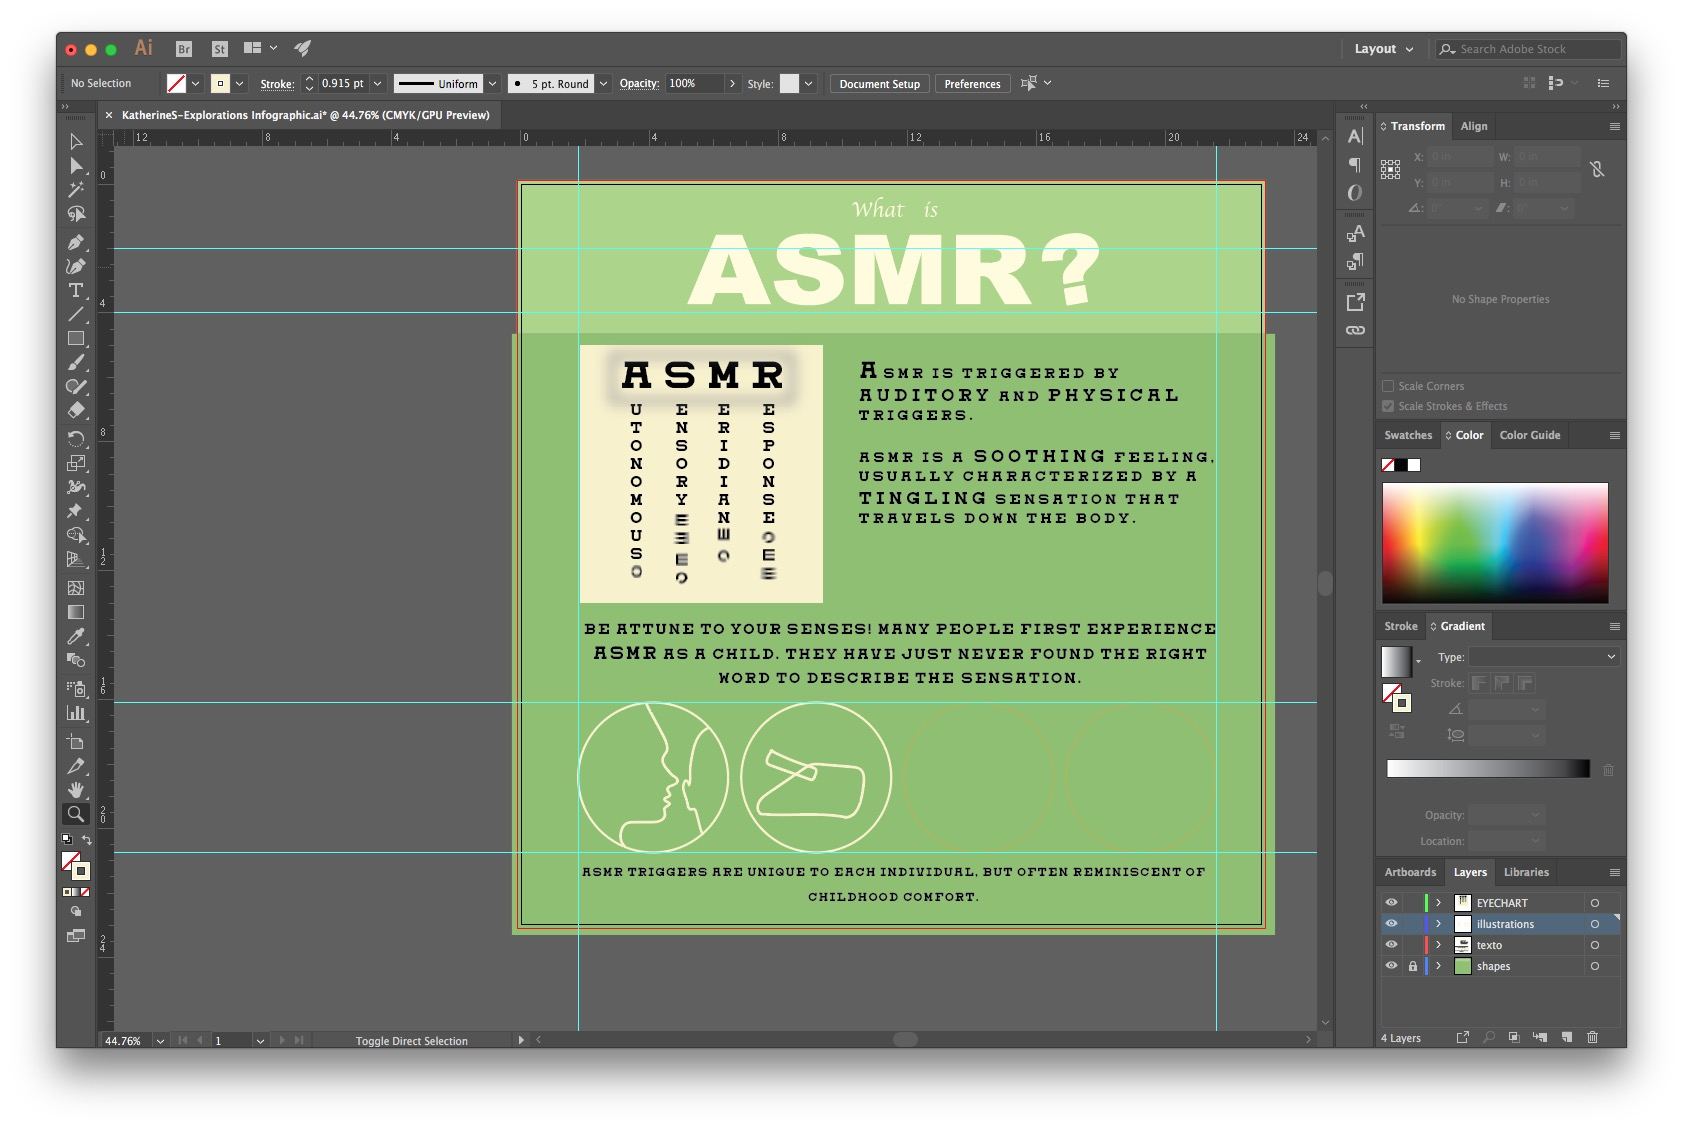 Screenshot of Adobe Illustrator Interface while creating an ASMR infographic